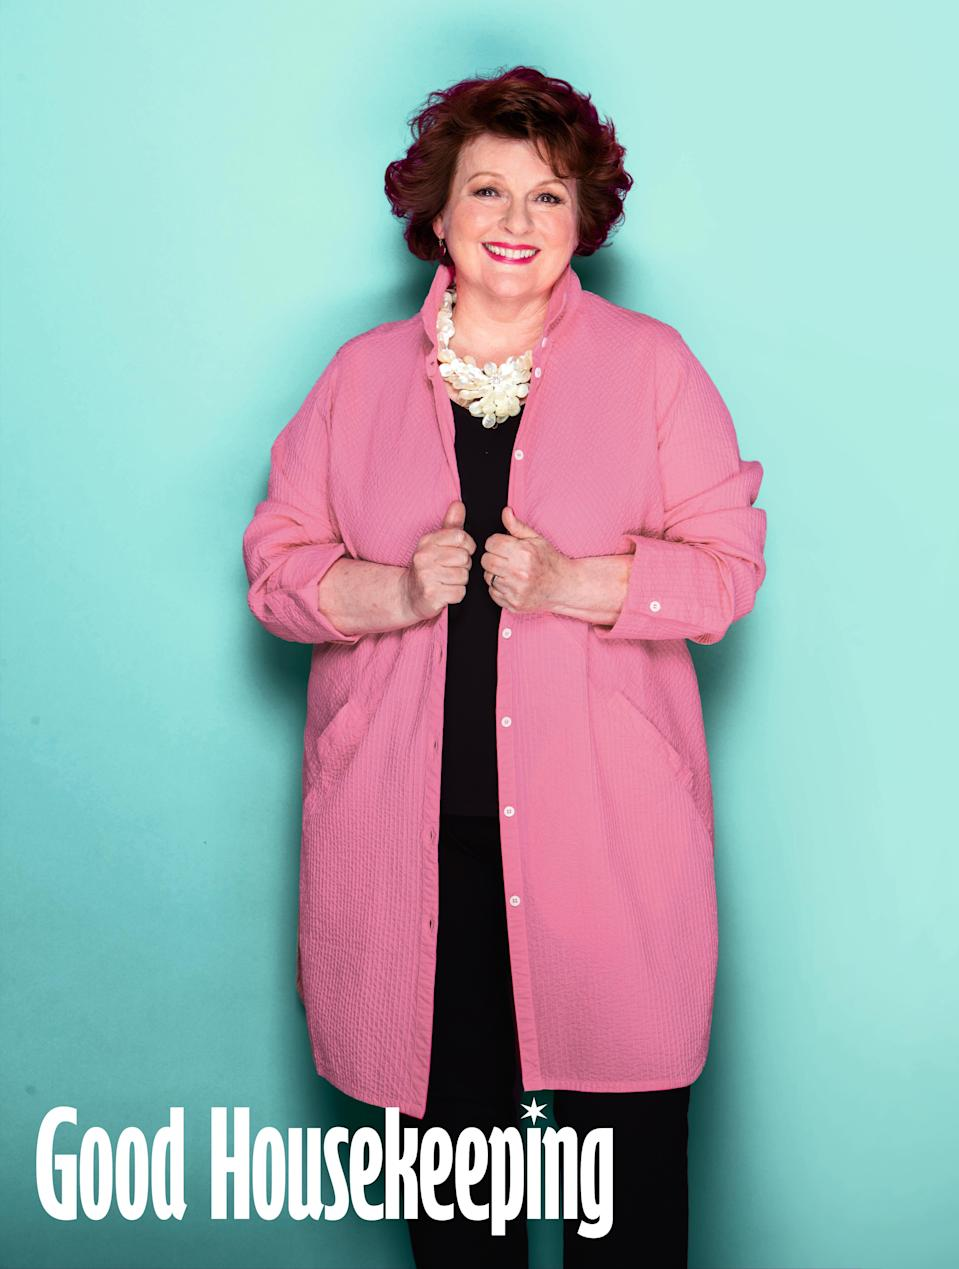 Brenda Blethyn turned 75 earlier this year (Trevor Leighton/Good Housekeeping)